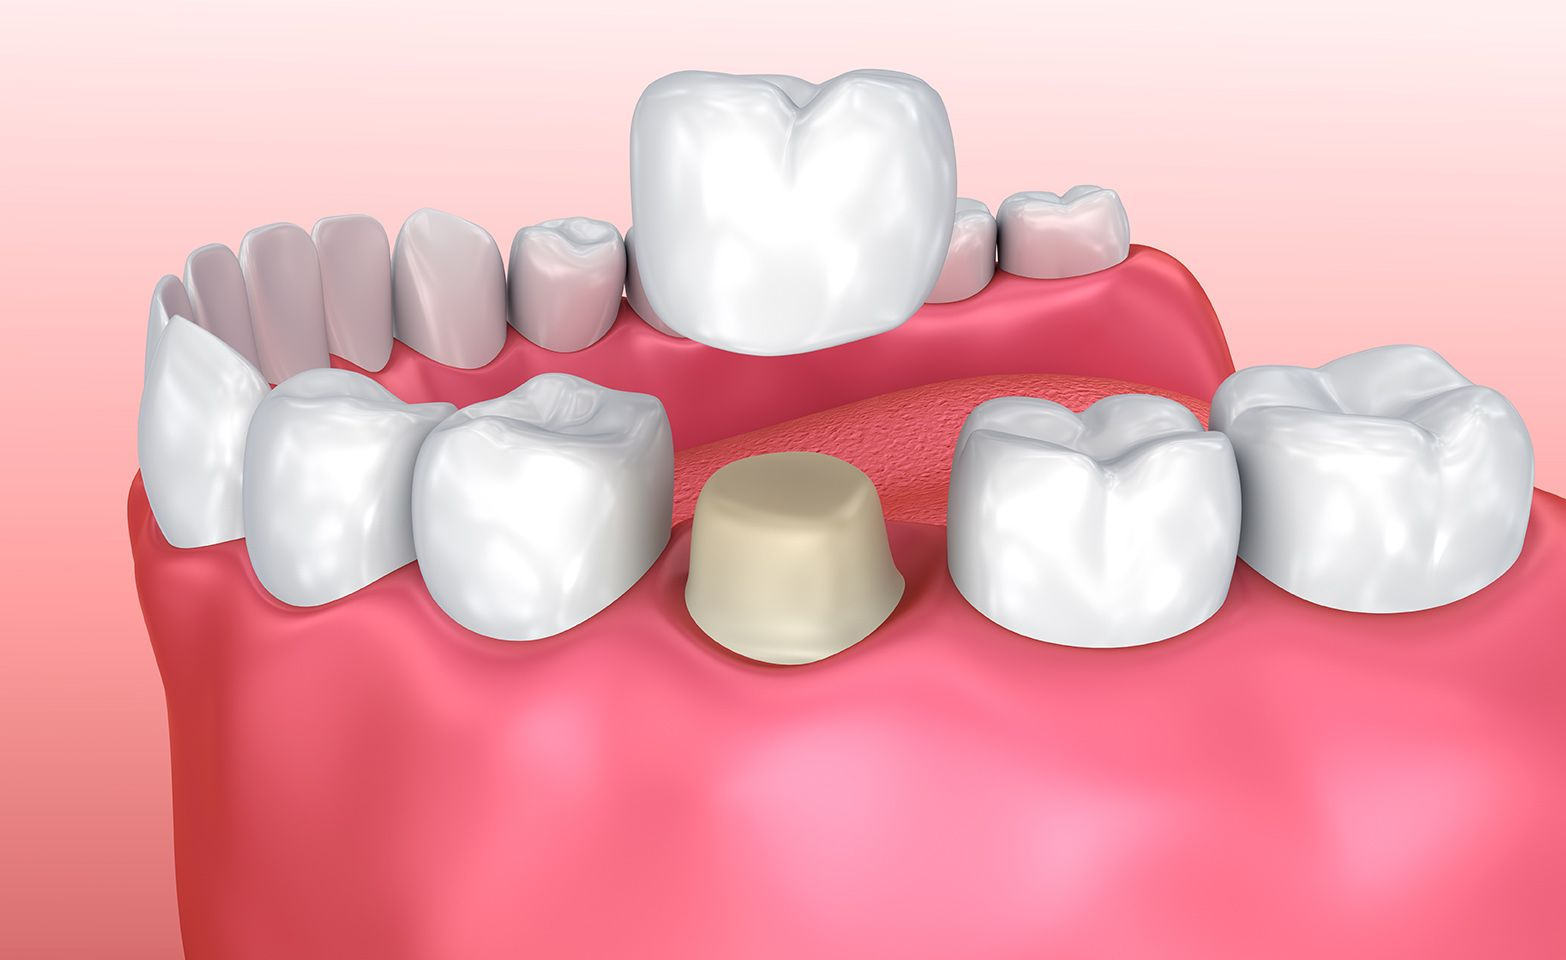 An illustration of a dental crown